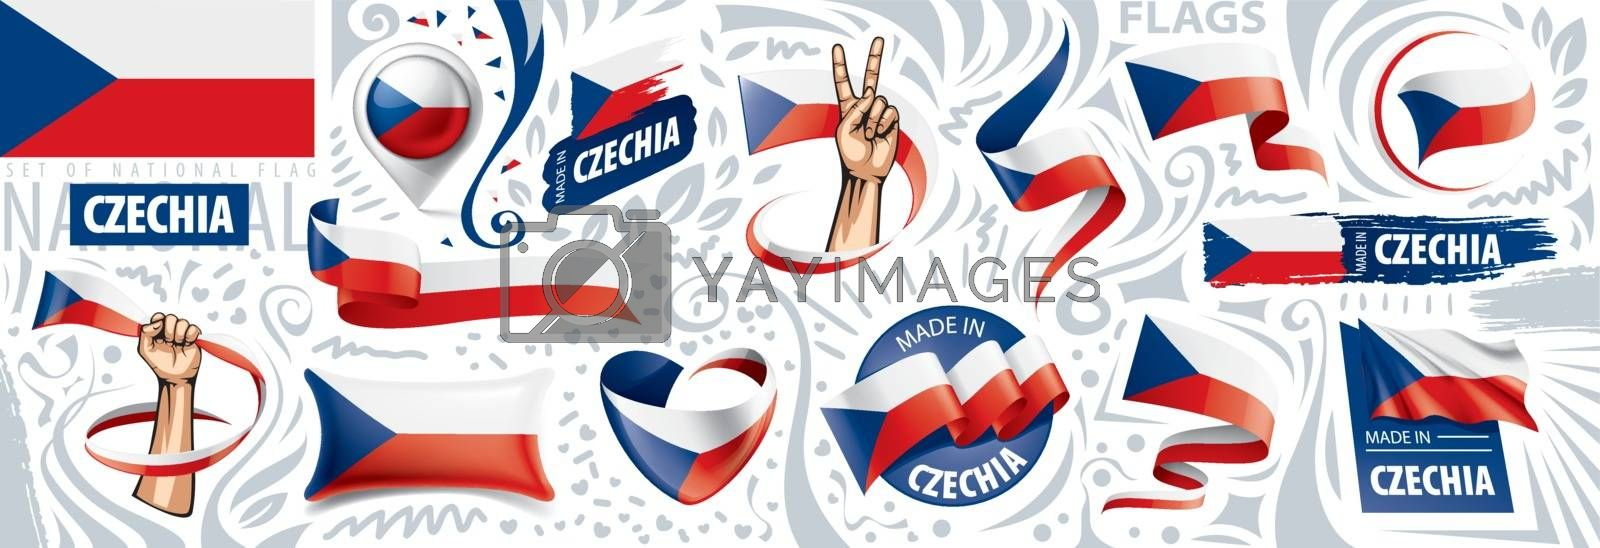 Vector set of the national flag of Czechia in various creative designs.